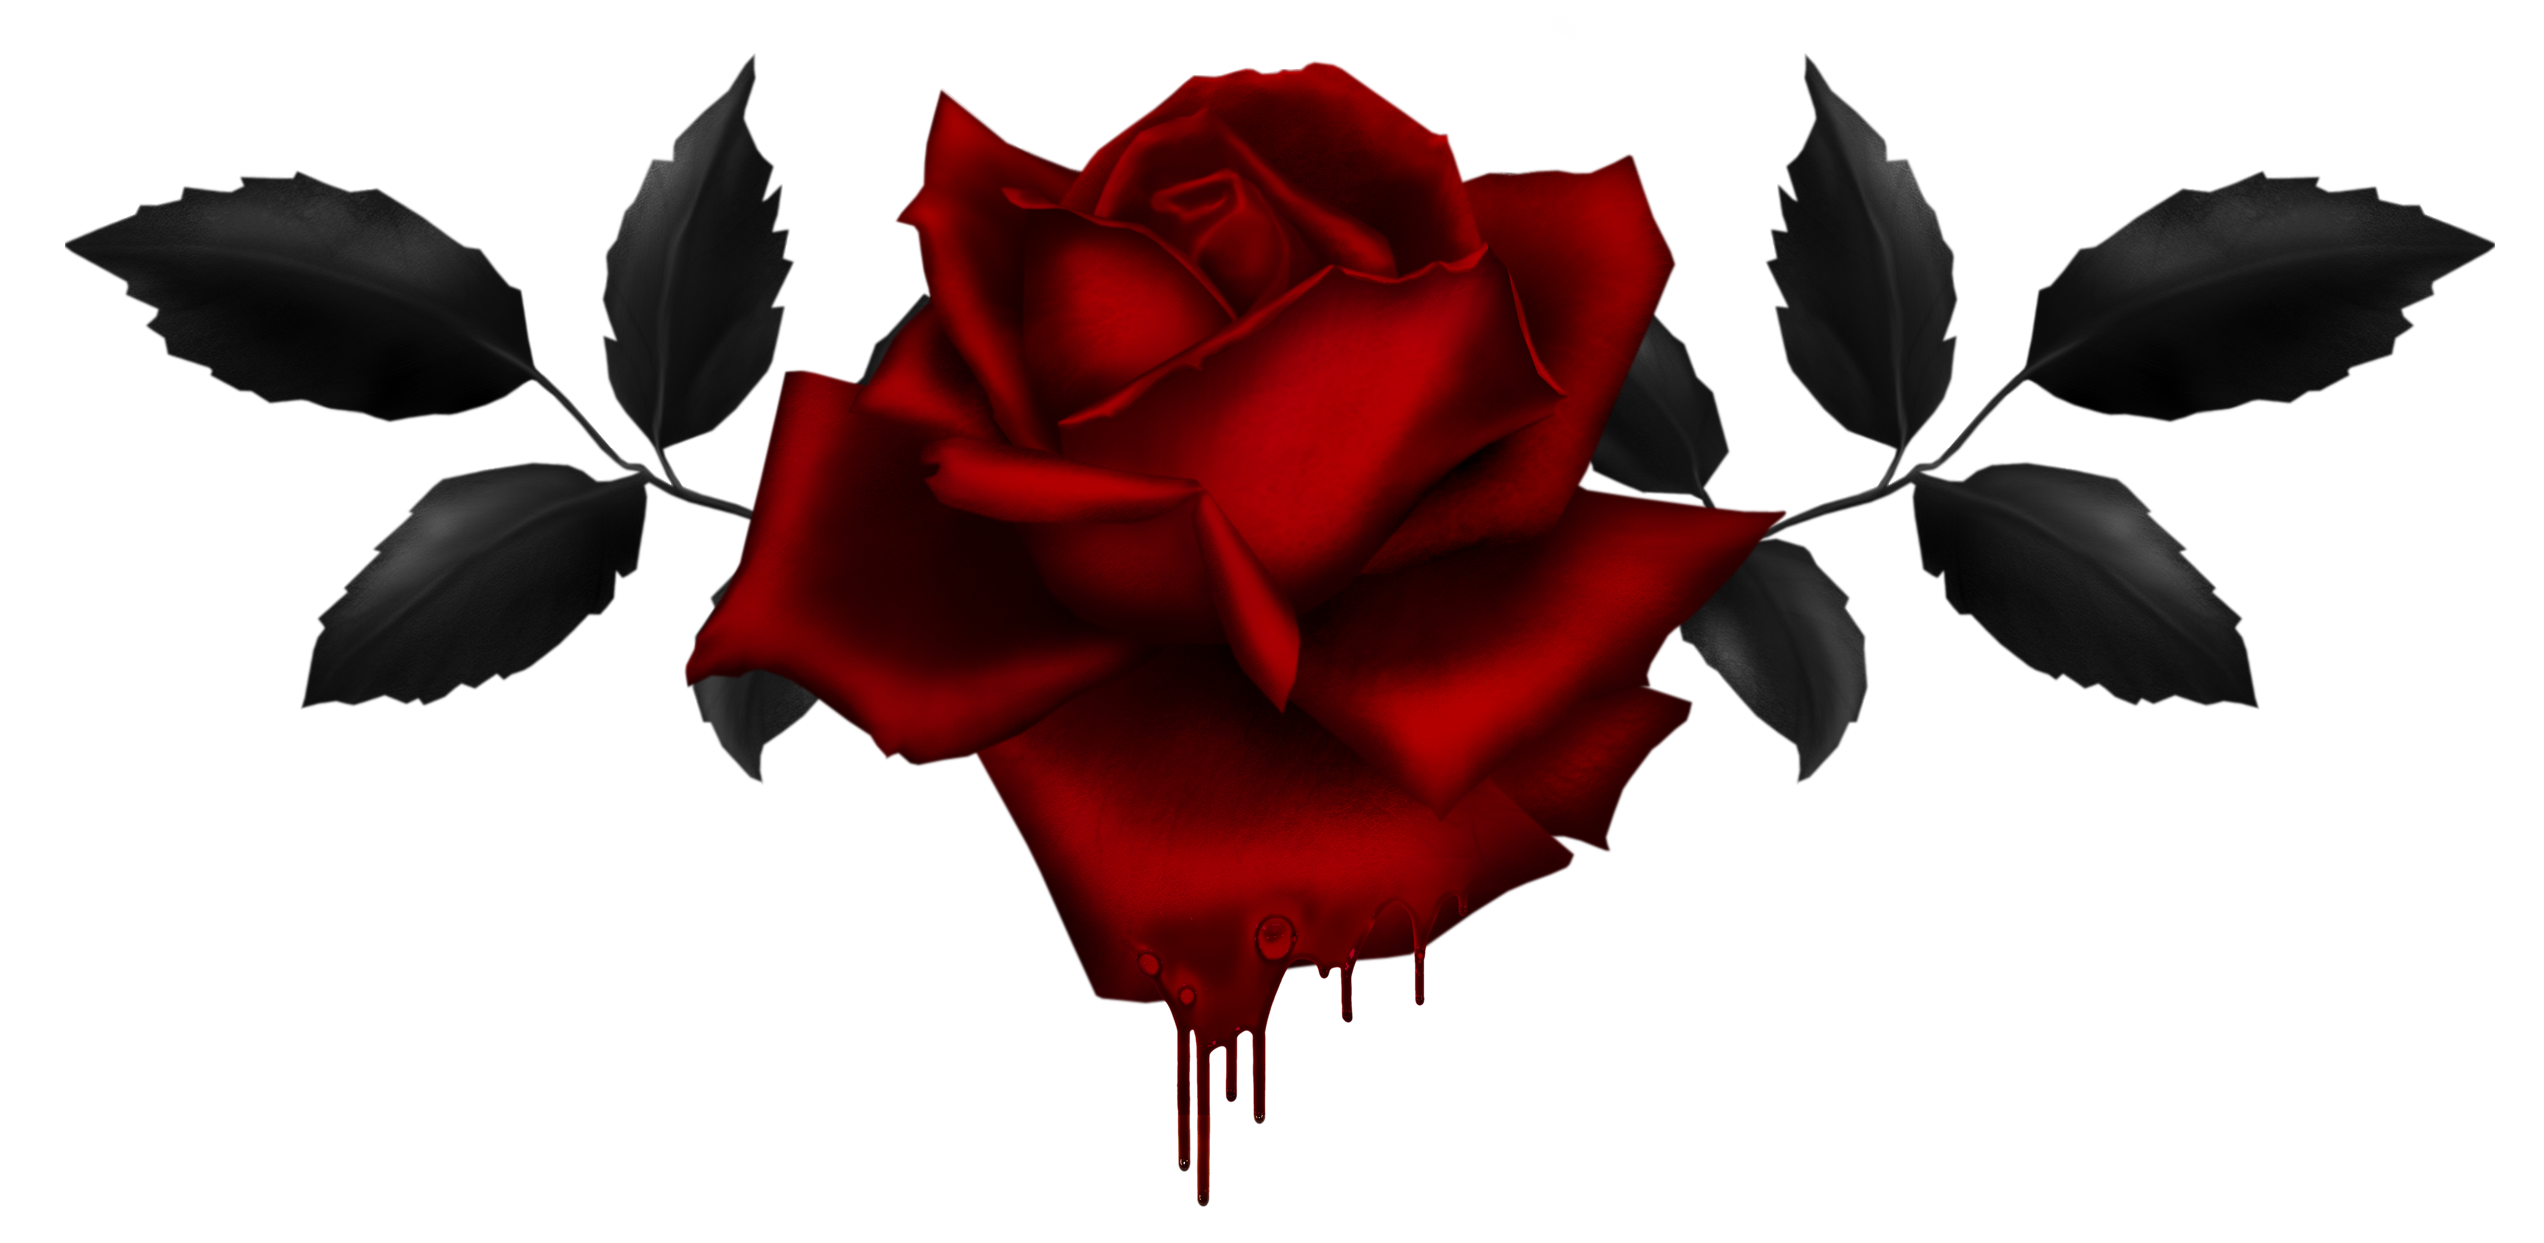 Gothic Rose Image PNG Image